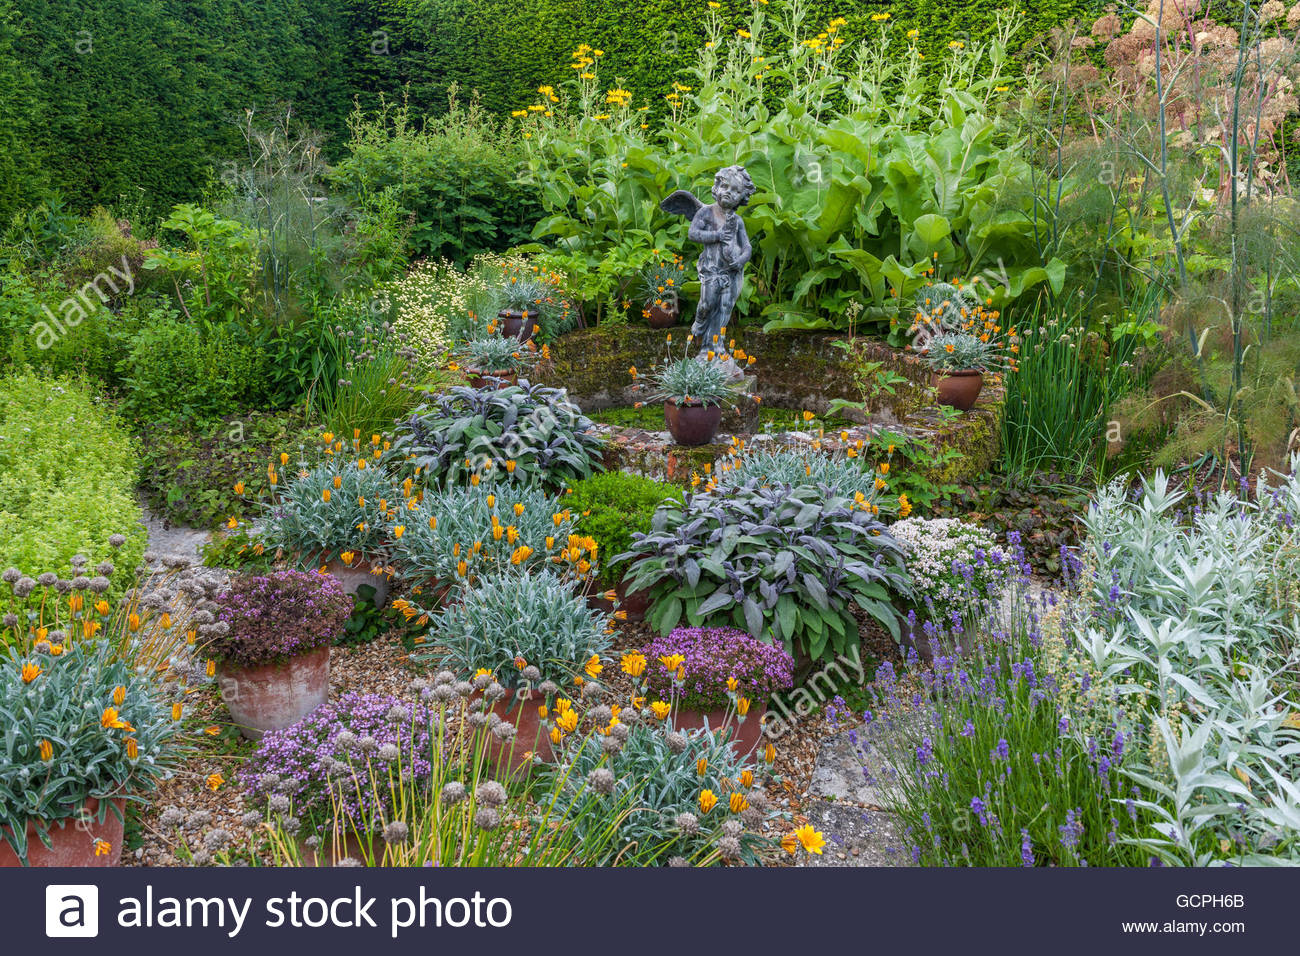 herb garden pots and containers - Stock Image